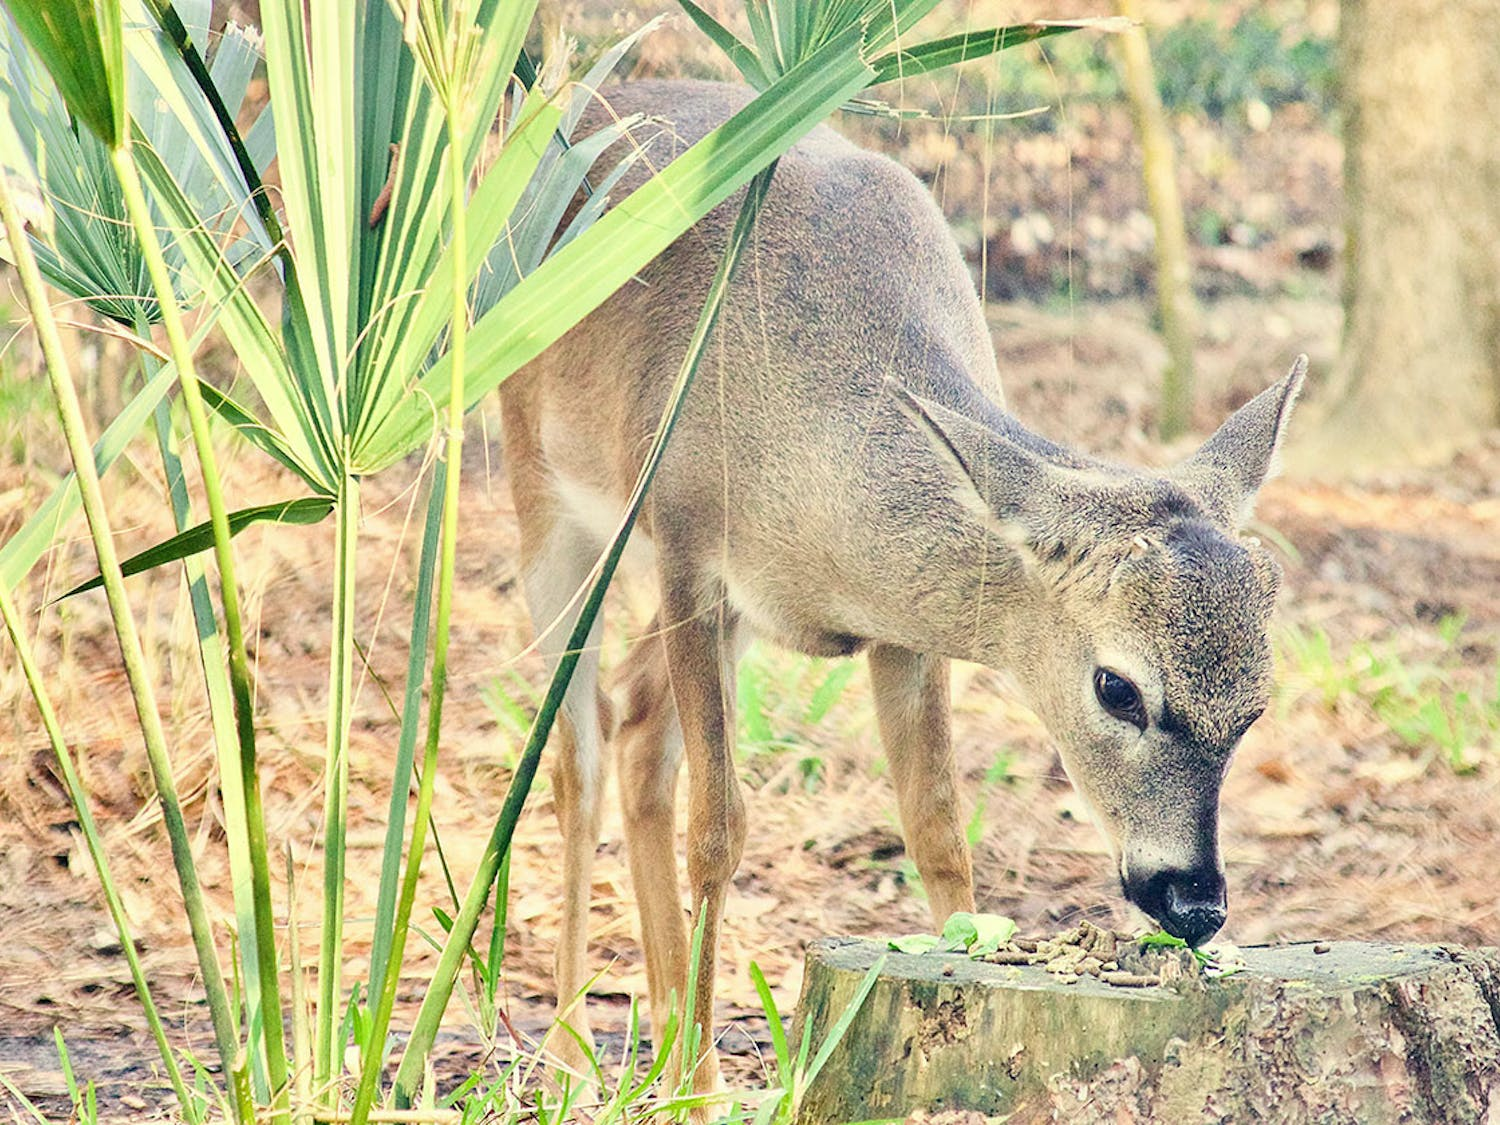 Elliot Blue Monroe, a Key deer, eats his breakfast at the Santa Fe College Teaching Zoo on Feb. 26, 2021. Key Deer Awareness Day is March 11, 2021.(Photo by Antonia LaRocca)